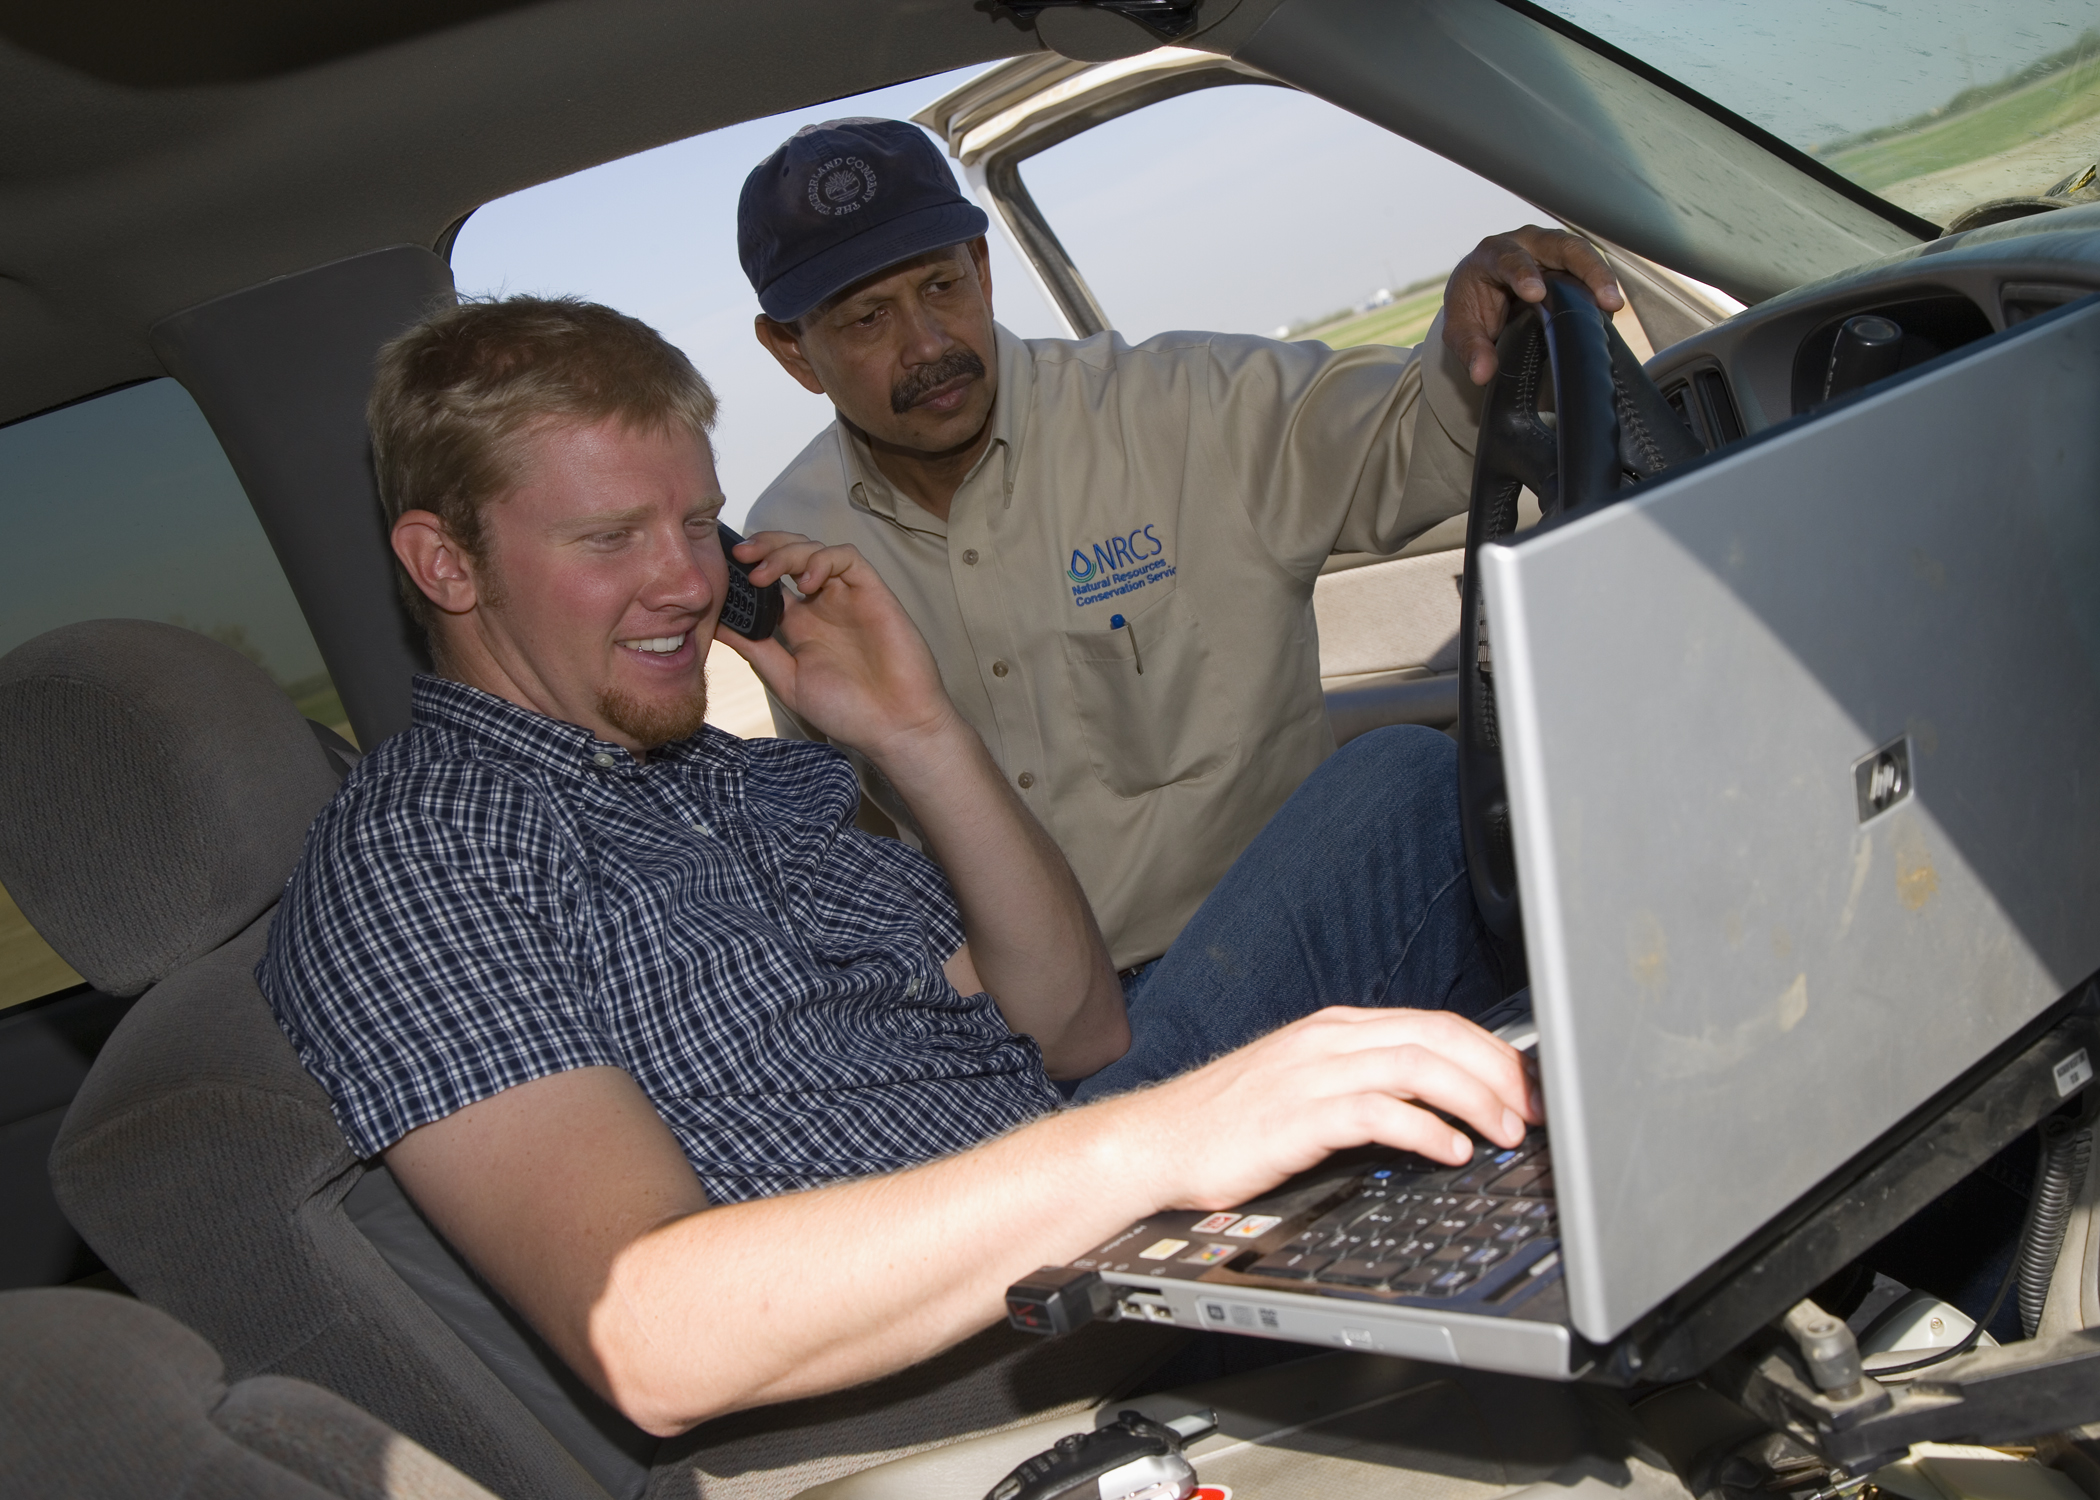 NRCS employee in car showing computer screen to farmer